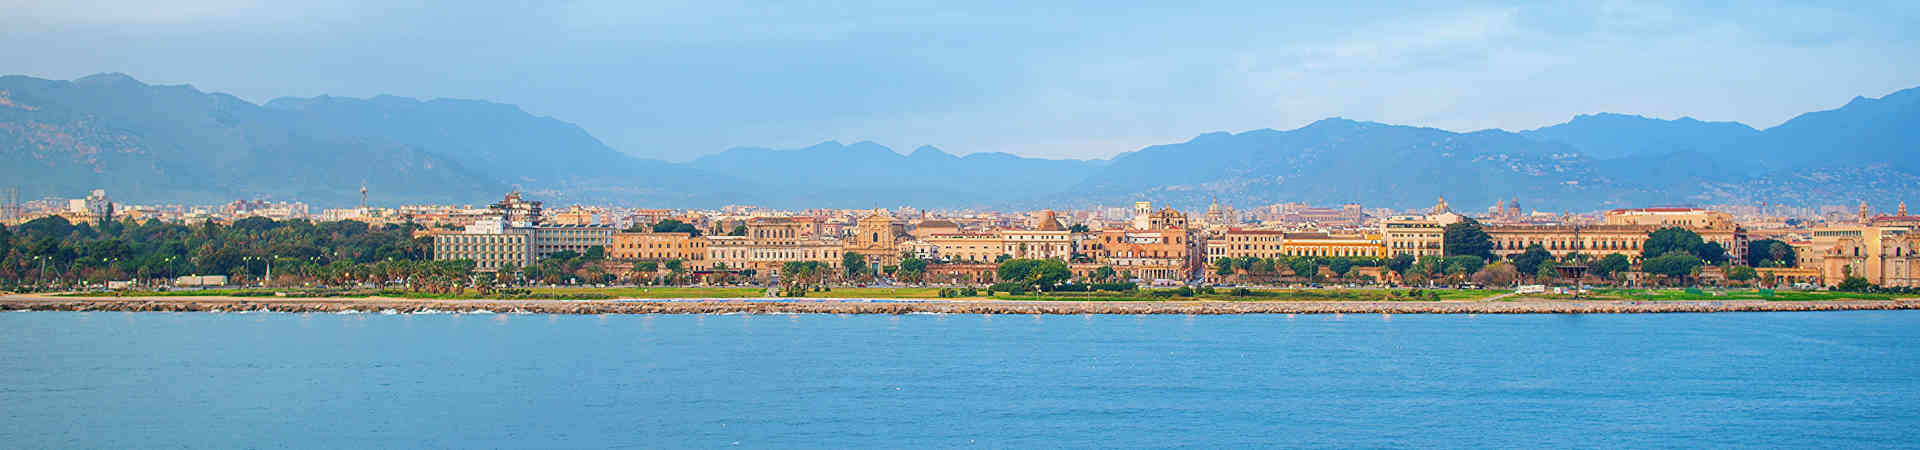 Resource image of the destination port Palermo for the ferry route Civitavecchia - Palermo